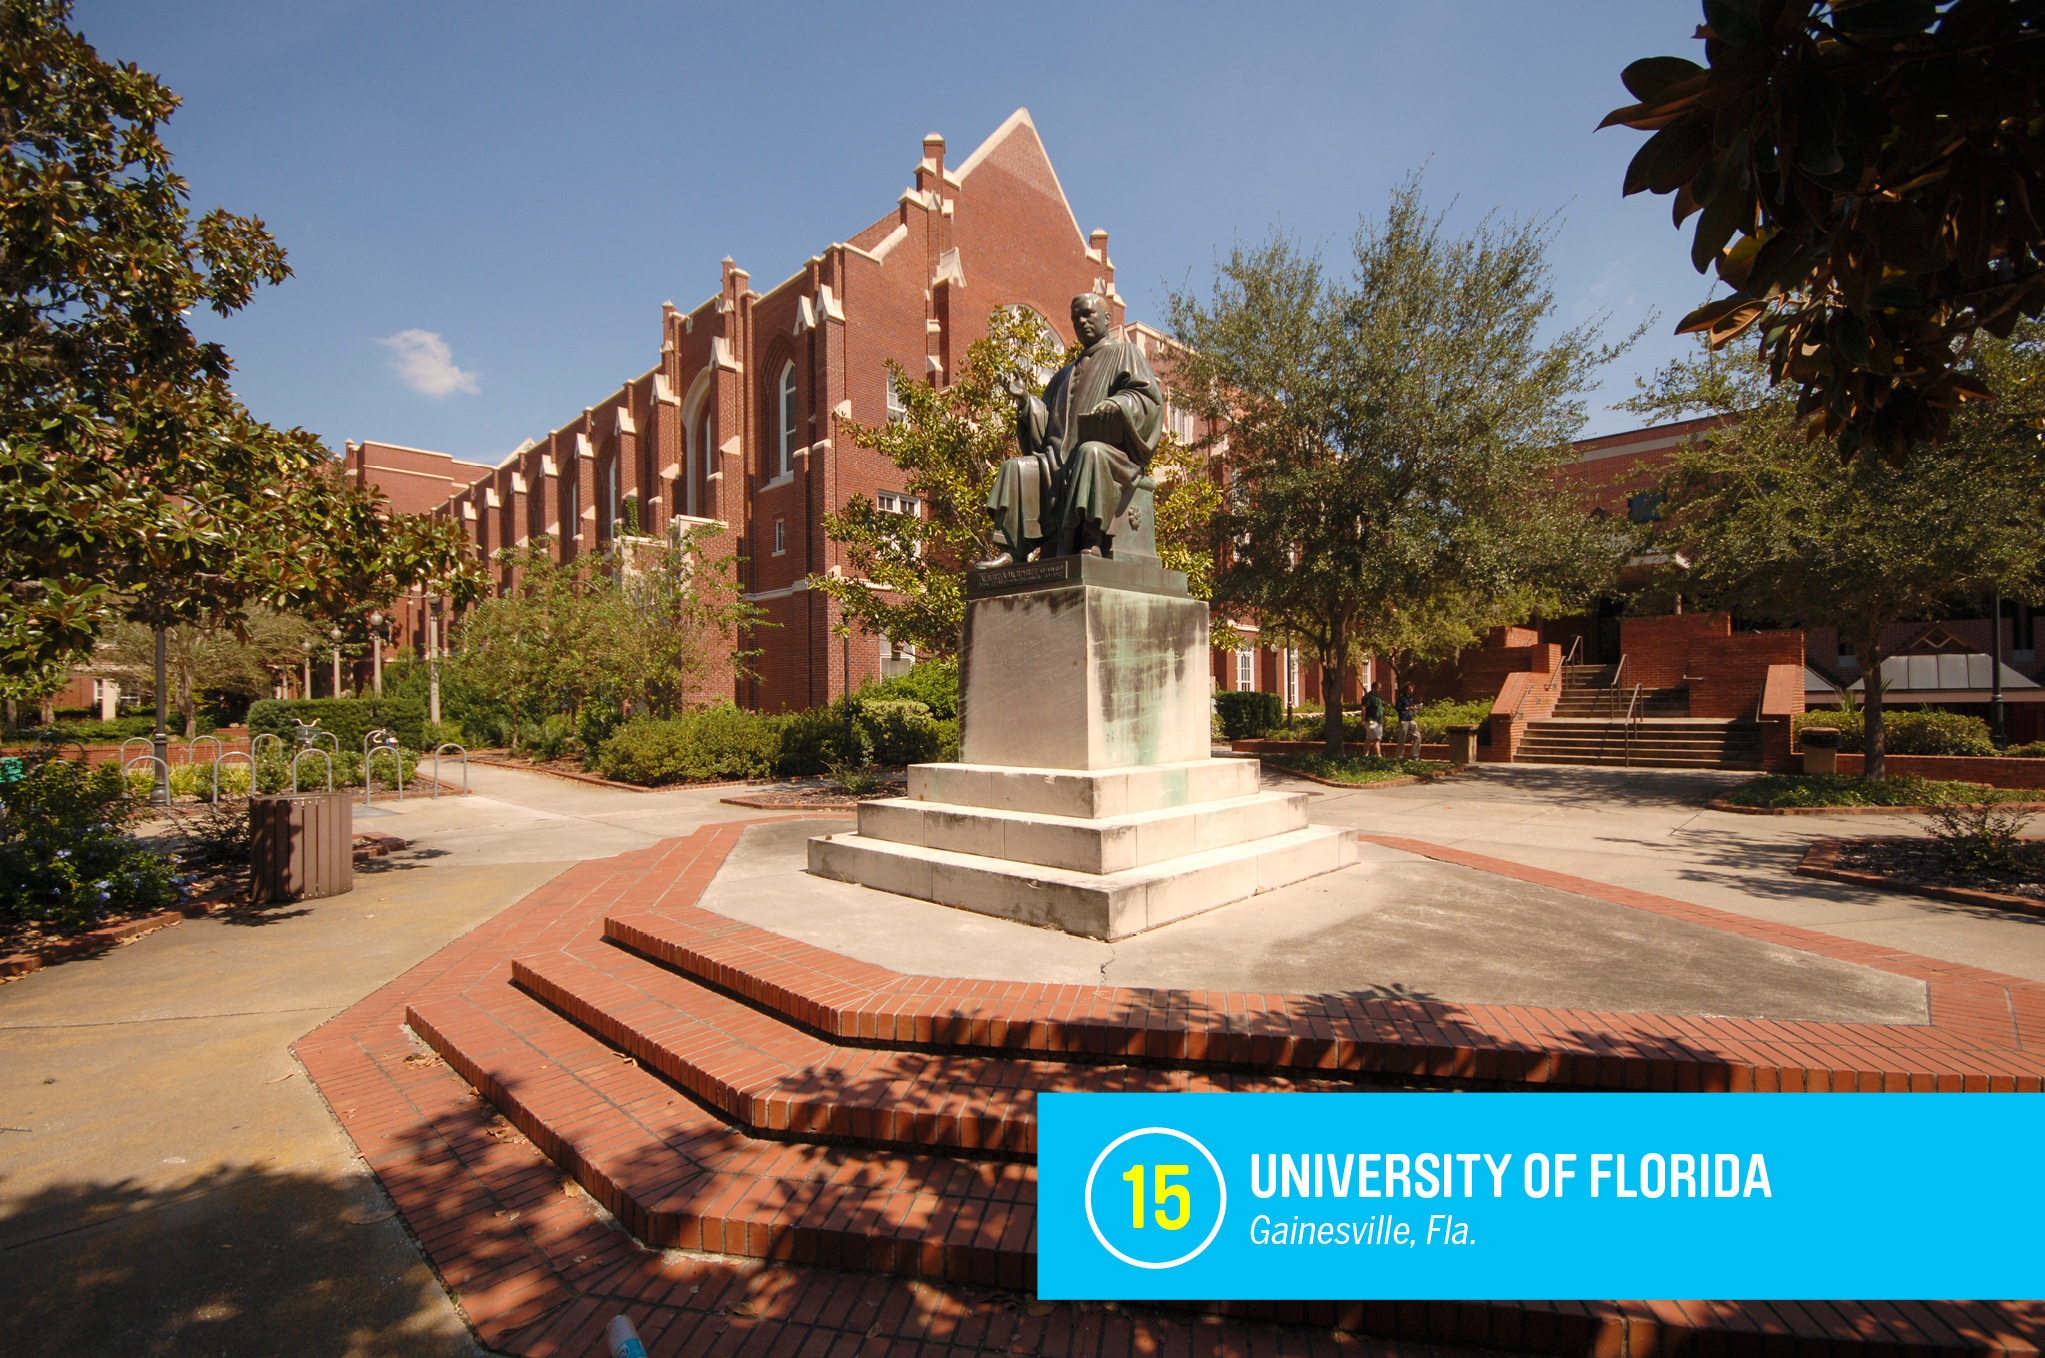 """The <a href=""""https://money.com/best-colleges/profile/university-of-florida/"""" target=""""_blank"""">University of Florida</a> is one of the biggest bargains in higher education, with tuition of just $6,300 a year for Floridians. For that low price, students get access to some of the world's top professors, well-respected programs in fields as diverse as astronomy and journalism, and sports teams that often dominate their leagues. <a href=""""https://money.com/best-colleges/profile/university-of-florida/"""" target=""""_blank"""">FULL PROFILE</a>"""